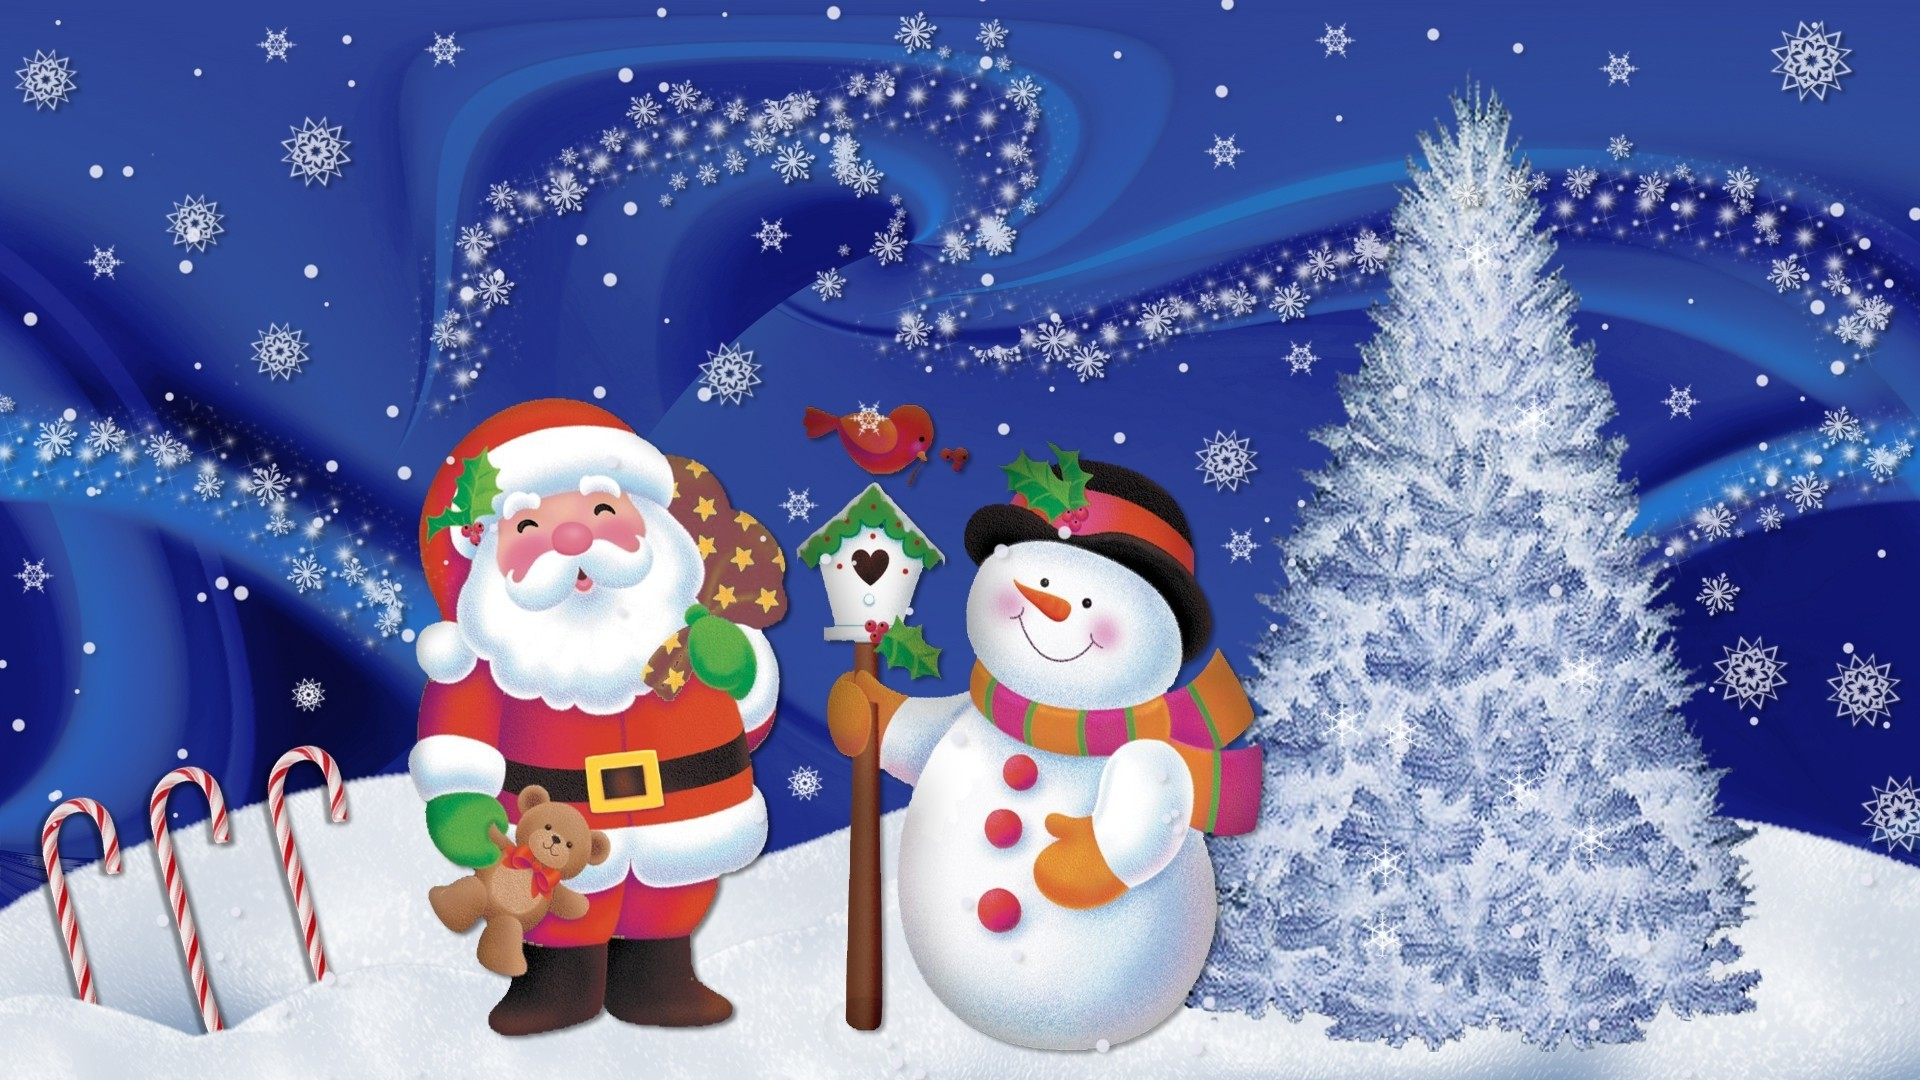 Lg Animated Wallpaper Christmas Wallpaper For Phones 84 Images